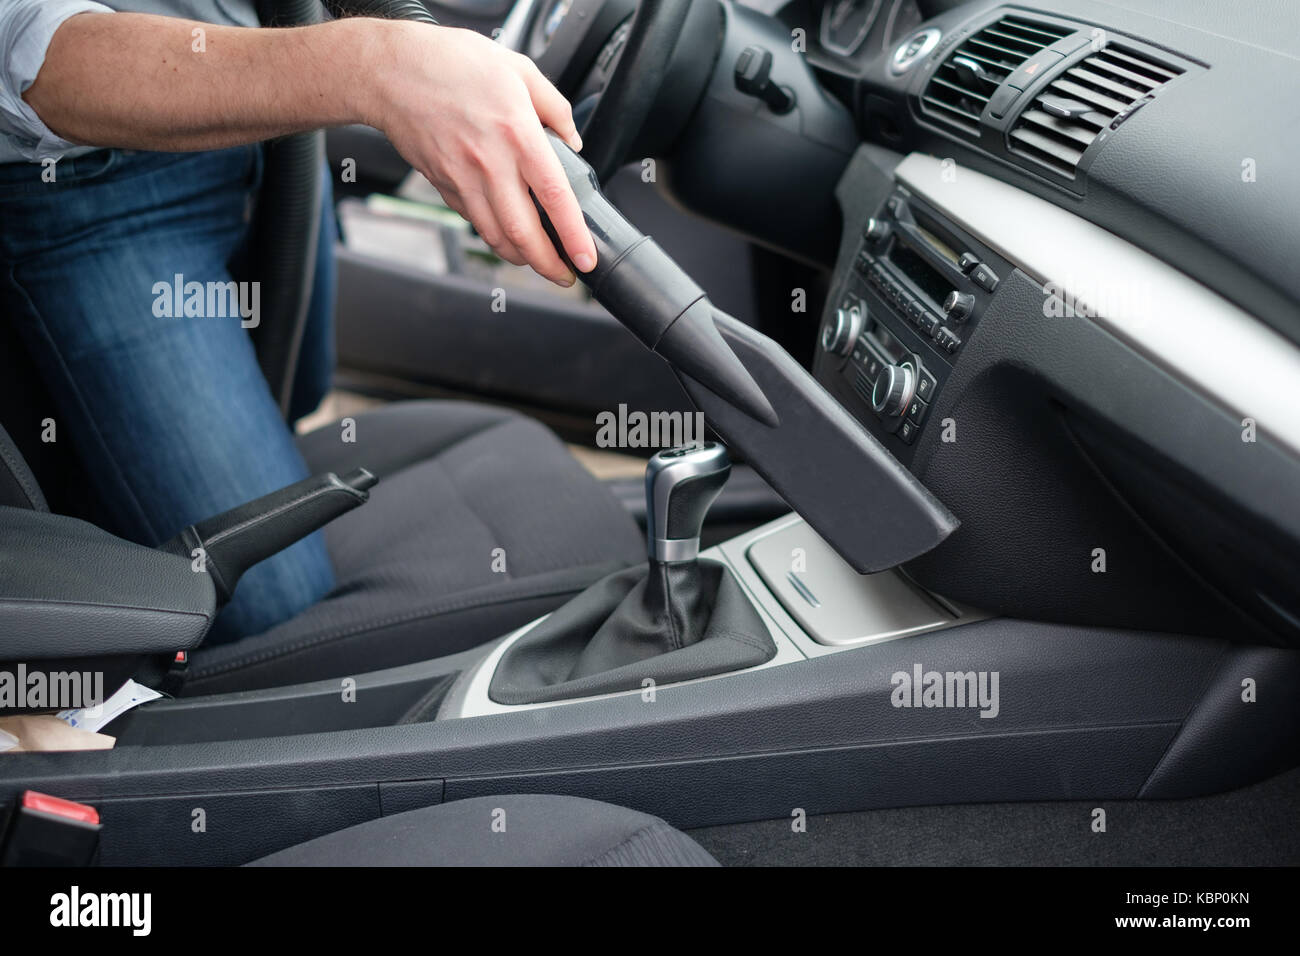 Car Vacuum Cleaner Stock Photos Car Vacuum Cleaner Stock Images